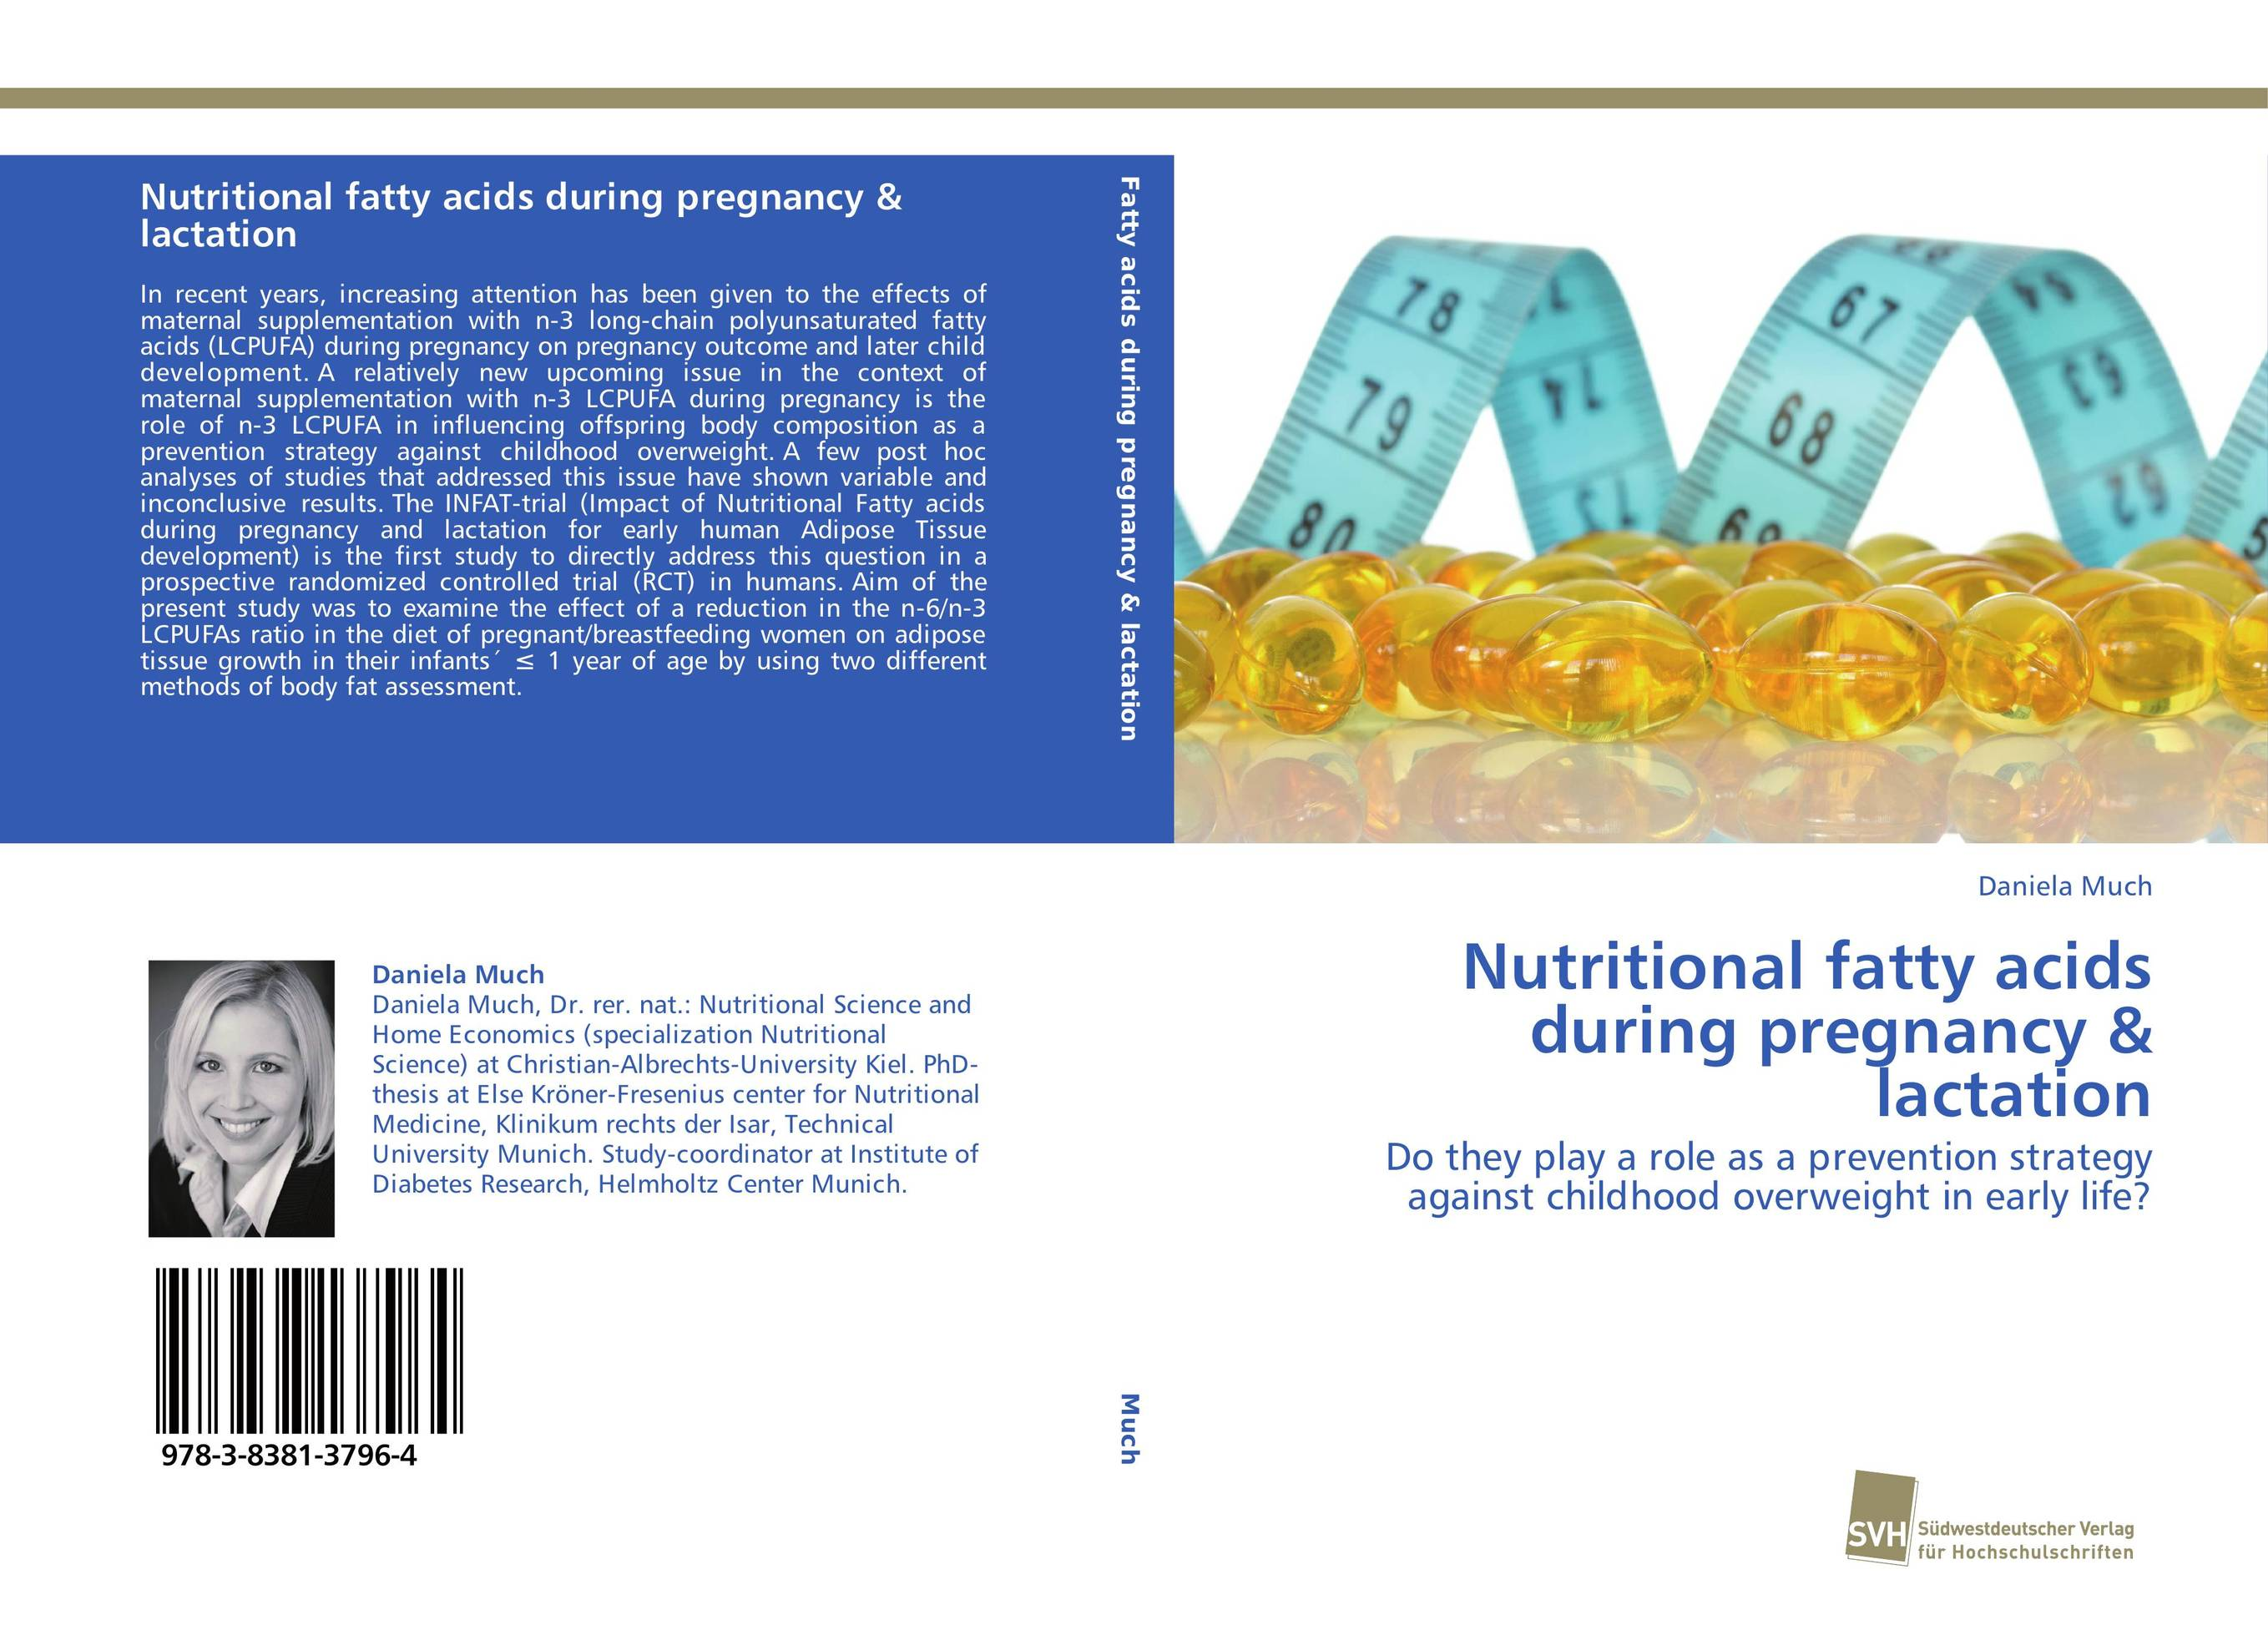 Nutritional fatty acids during pregnancy & lactation drugs during pregnancy and lactation treatment options and risk assessment